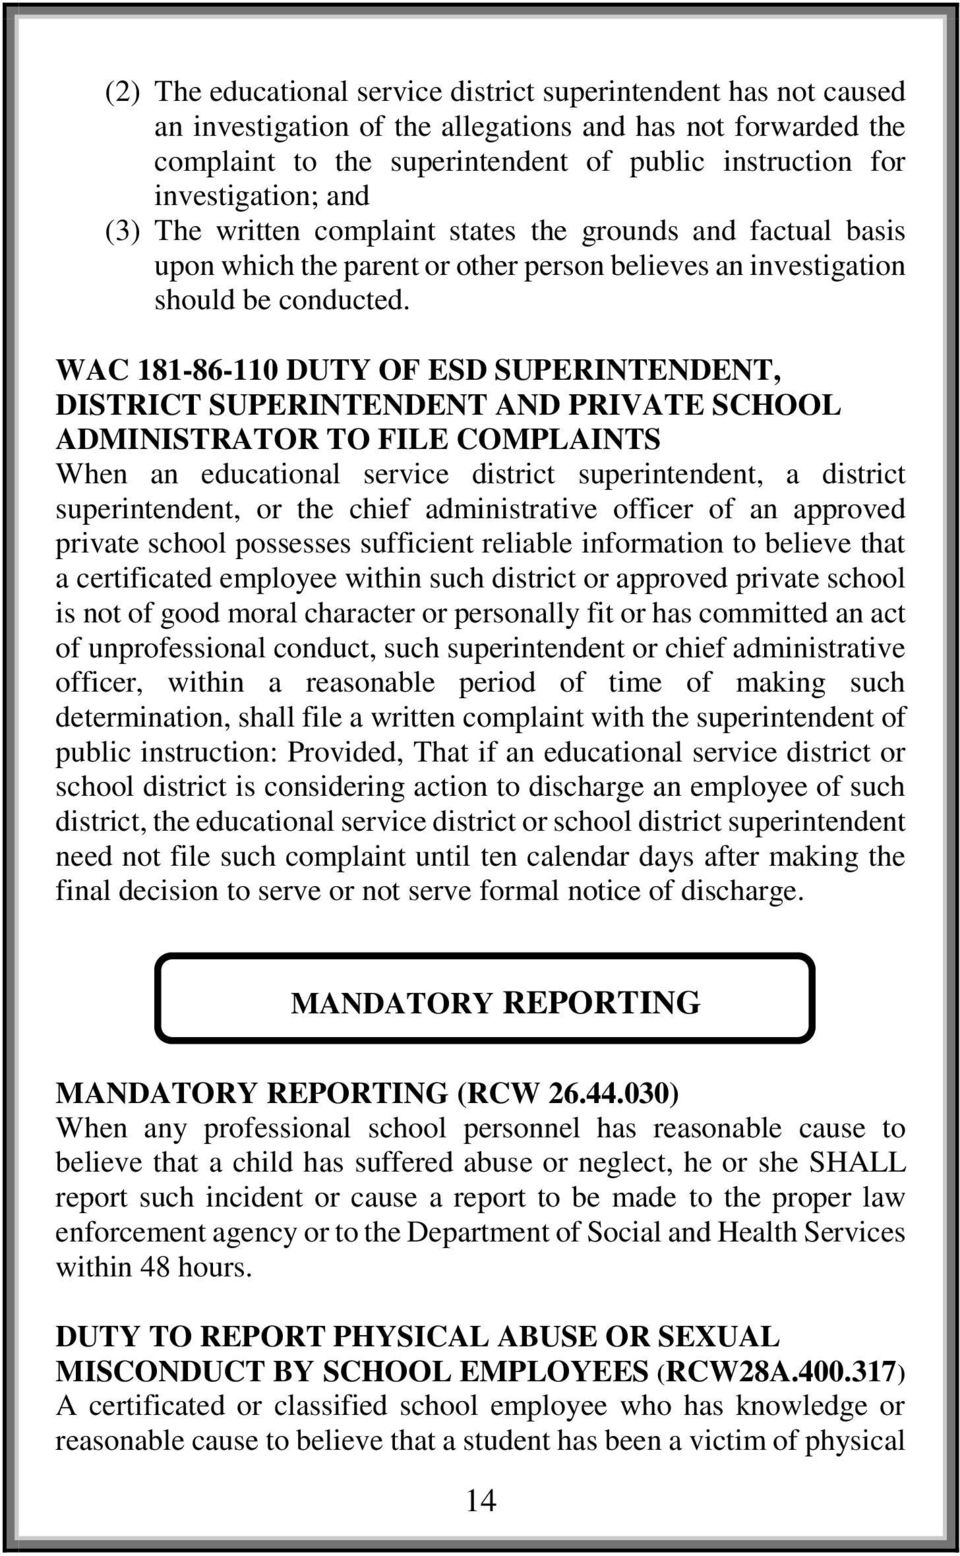 WAC 181-86-110 DUTY OF ESD SUPERINTENDENT, DISTRICT SUPERINTENDENT AND PRIVATE SCHOOL ADMINISTRATOR TO FILE COMPLAINTS When an educational service district superintendent, a district superintendent,